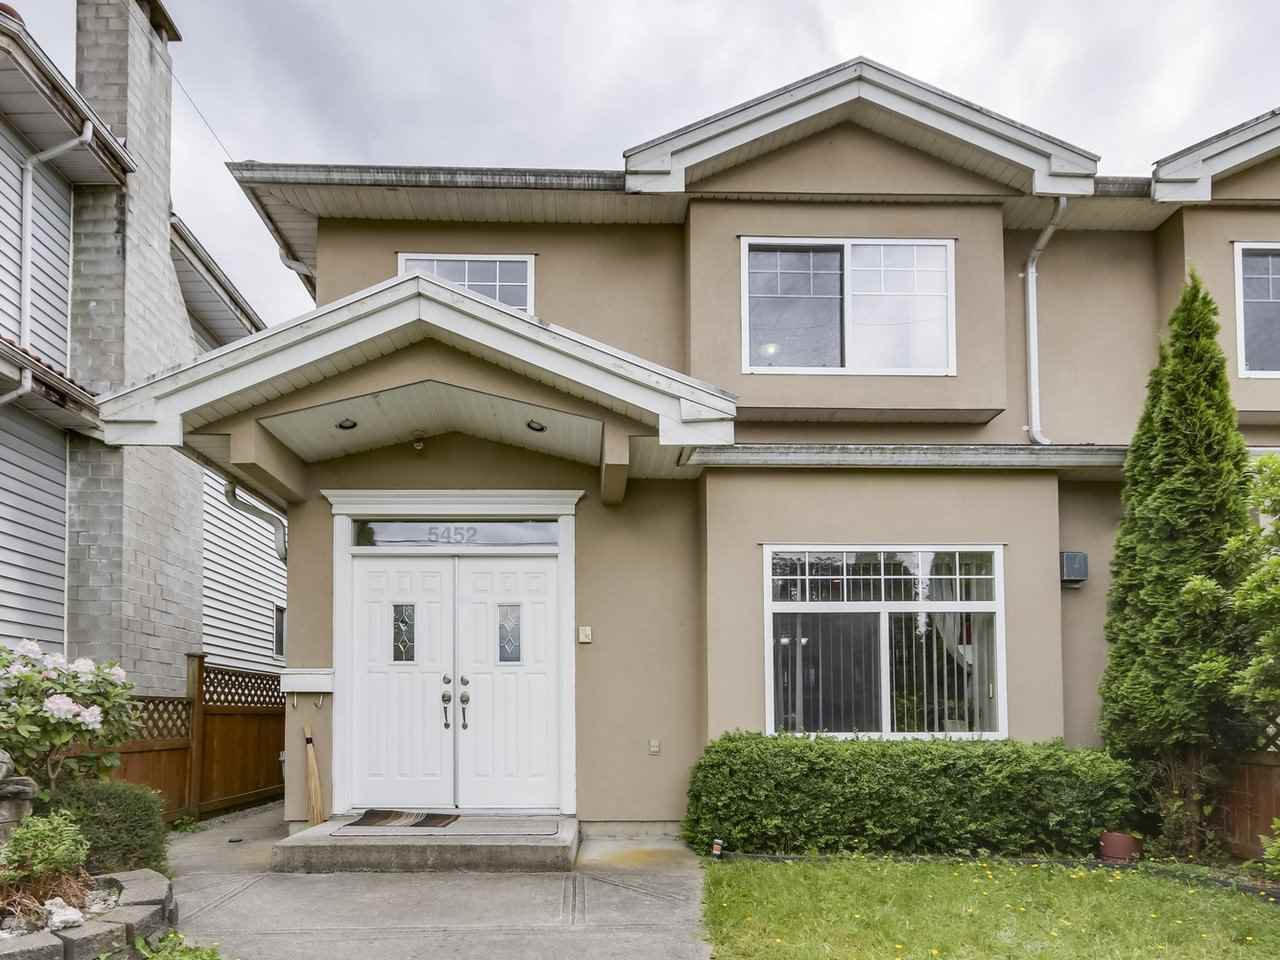 Main Photo: 5452 MANOR Street in Burnaby: Central BN 1/2 Duplex for sale (Burnaby North)  : MLS®# R2358736